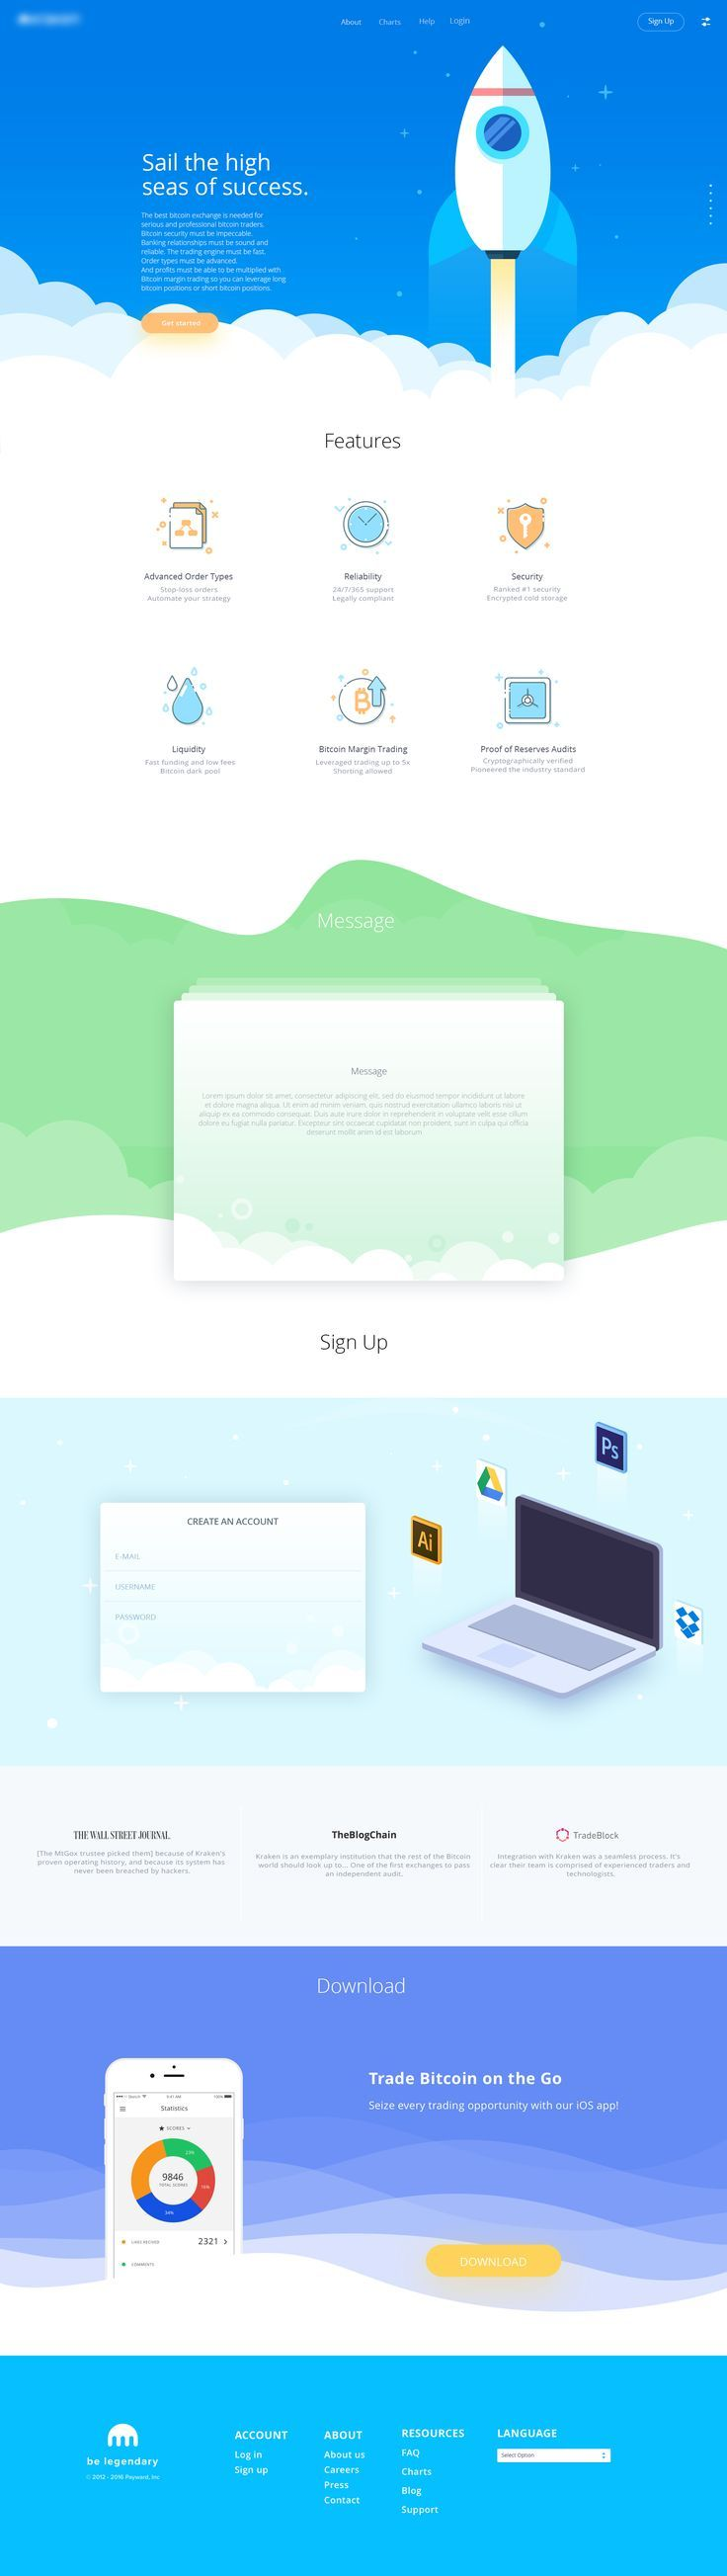 Simple Clean Minimalist Website Collection. = = = FREE CONSULTATION! Get similar web design service @ http://smallstereo.com